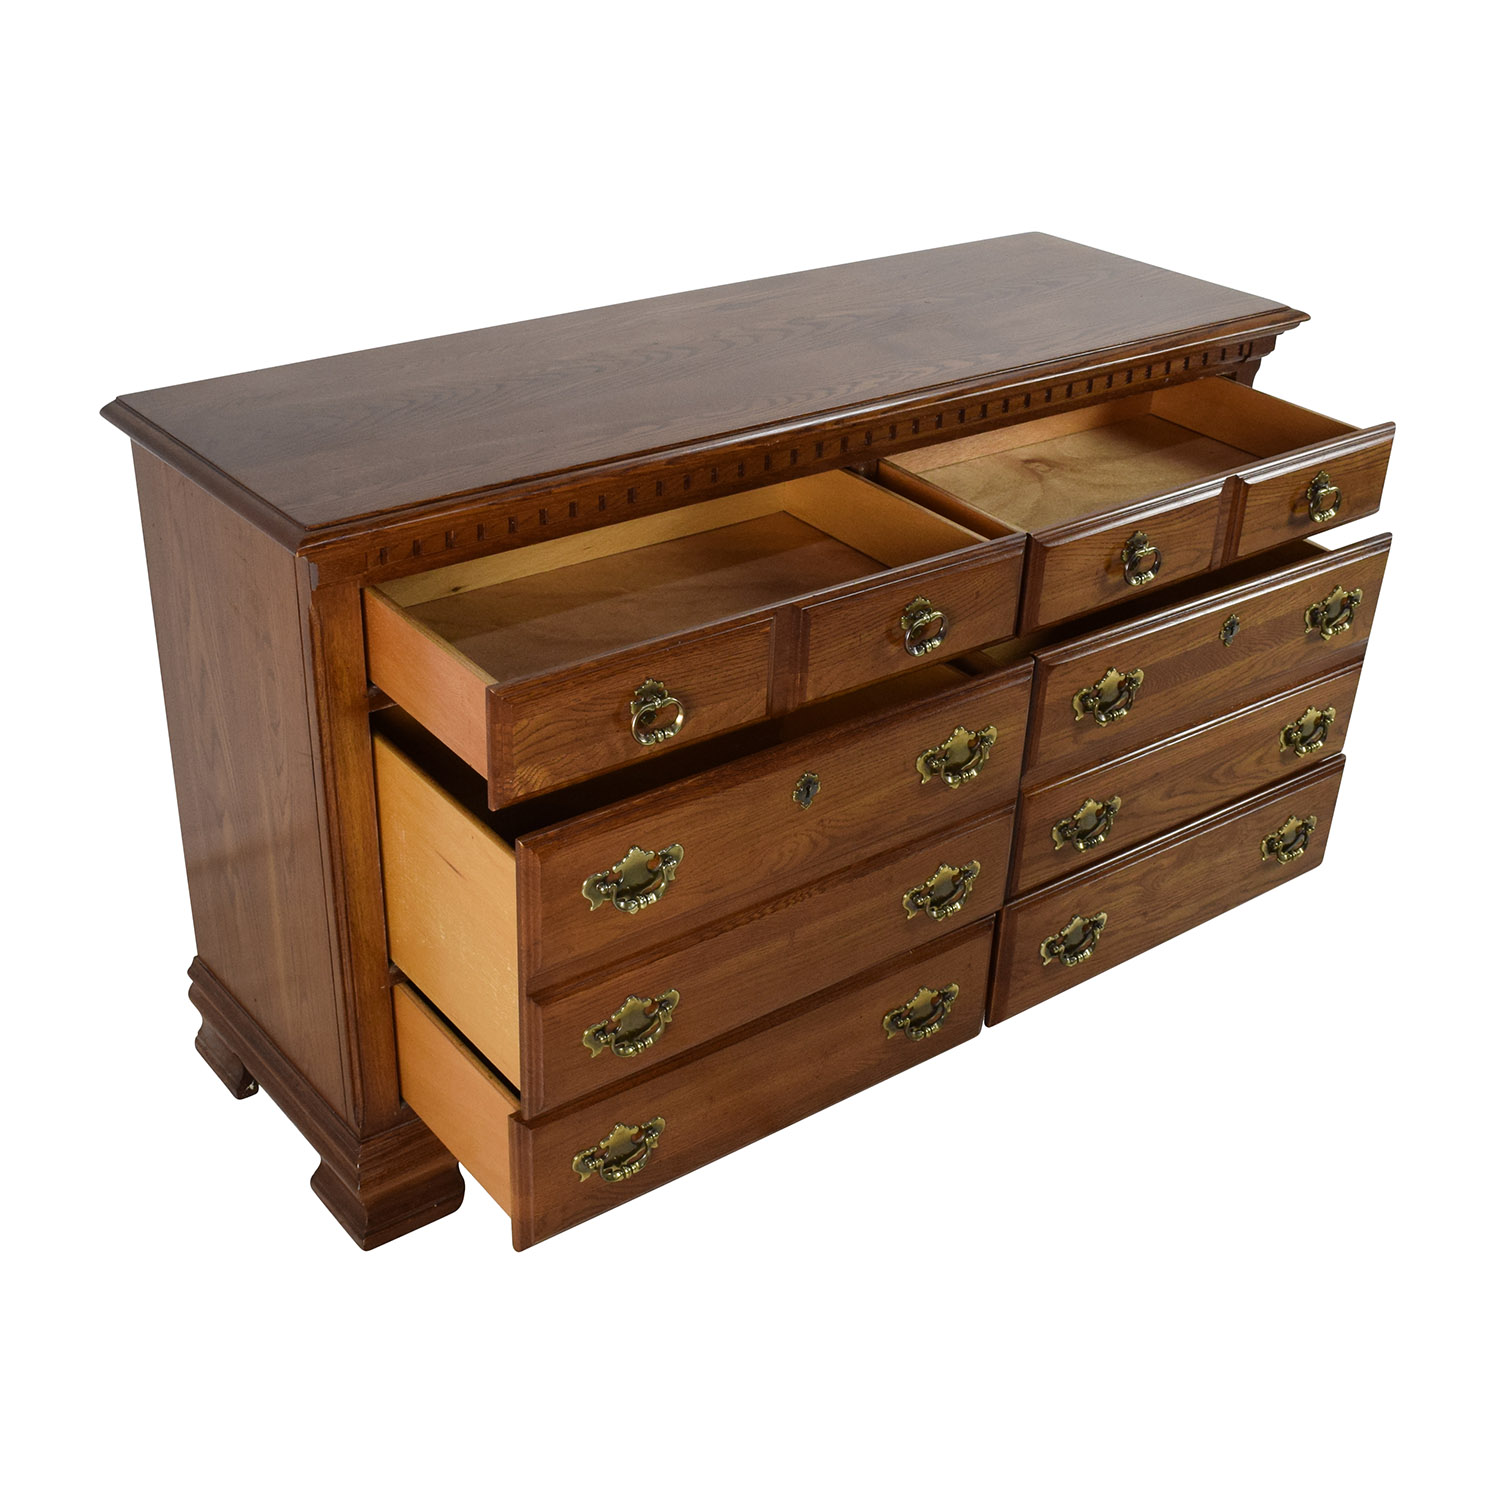 64 Off Kincaid Furniture Kincaid Furniture Solid Wood Dresser Storage